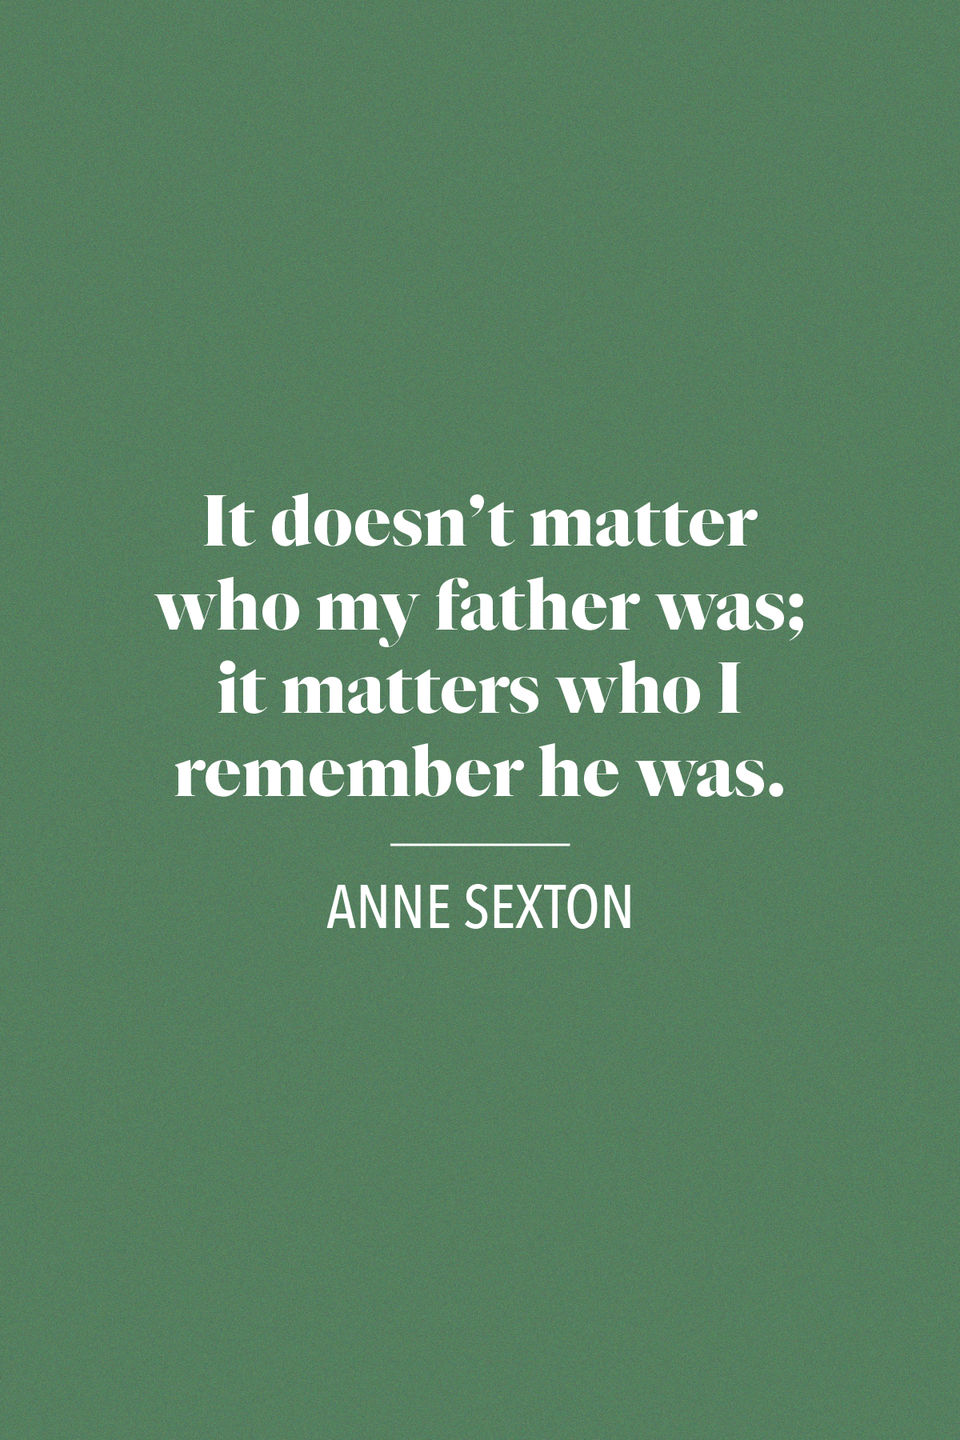 "<p>Anne Sexton, a Pulitzer Prize-winning poet said in a journal entry from 1972, ""It doesn't matter who my father was; it matters who I remember he was.""</p>"